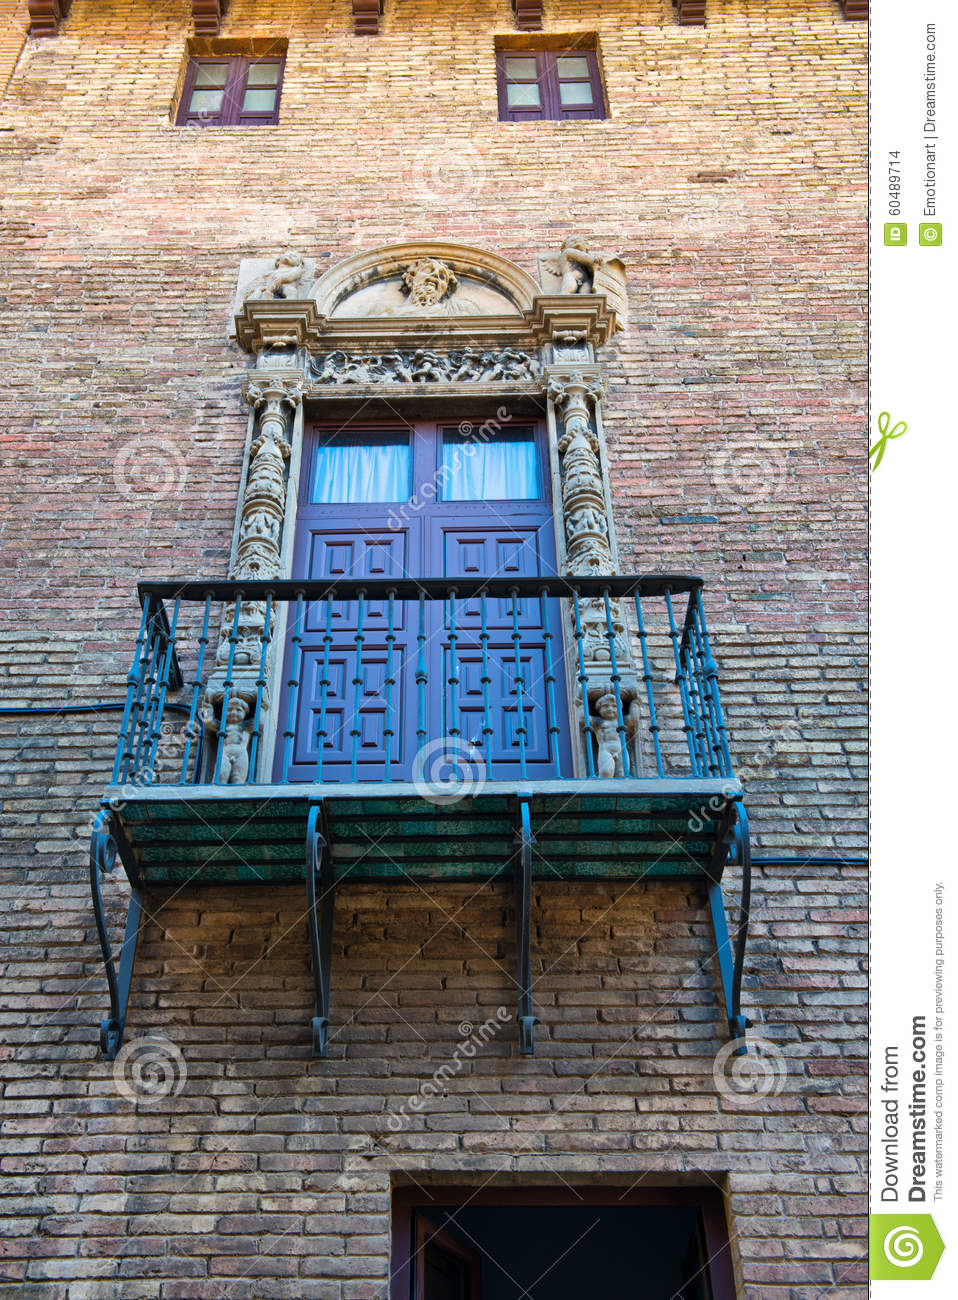 Balcony with ornate railing and door barcelona stock for Low balcony wall